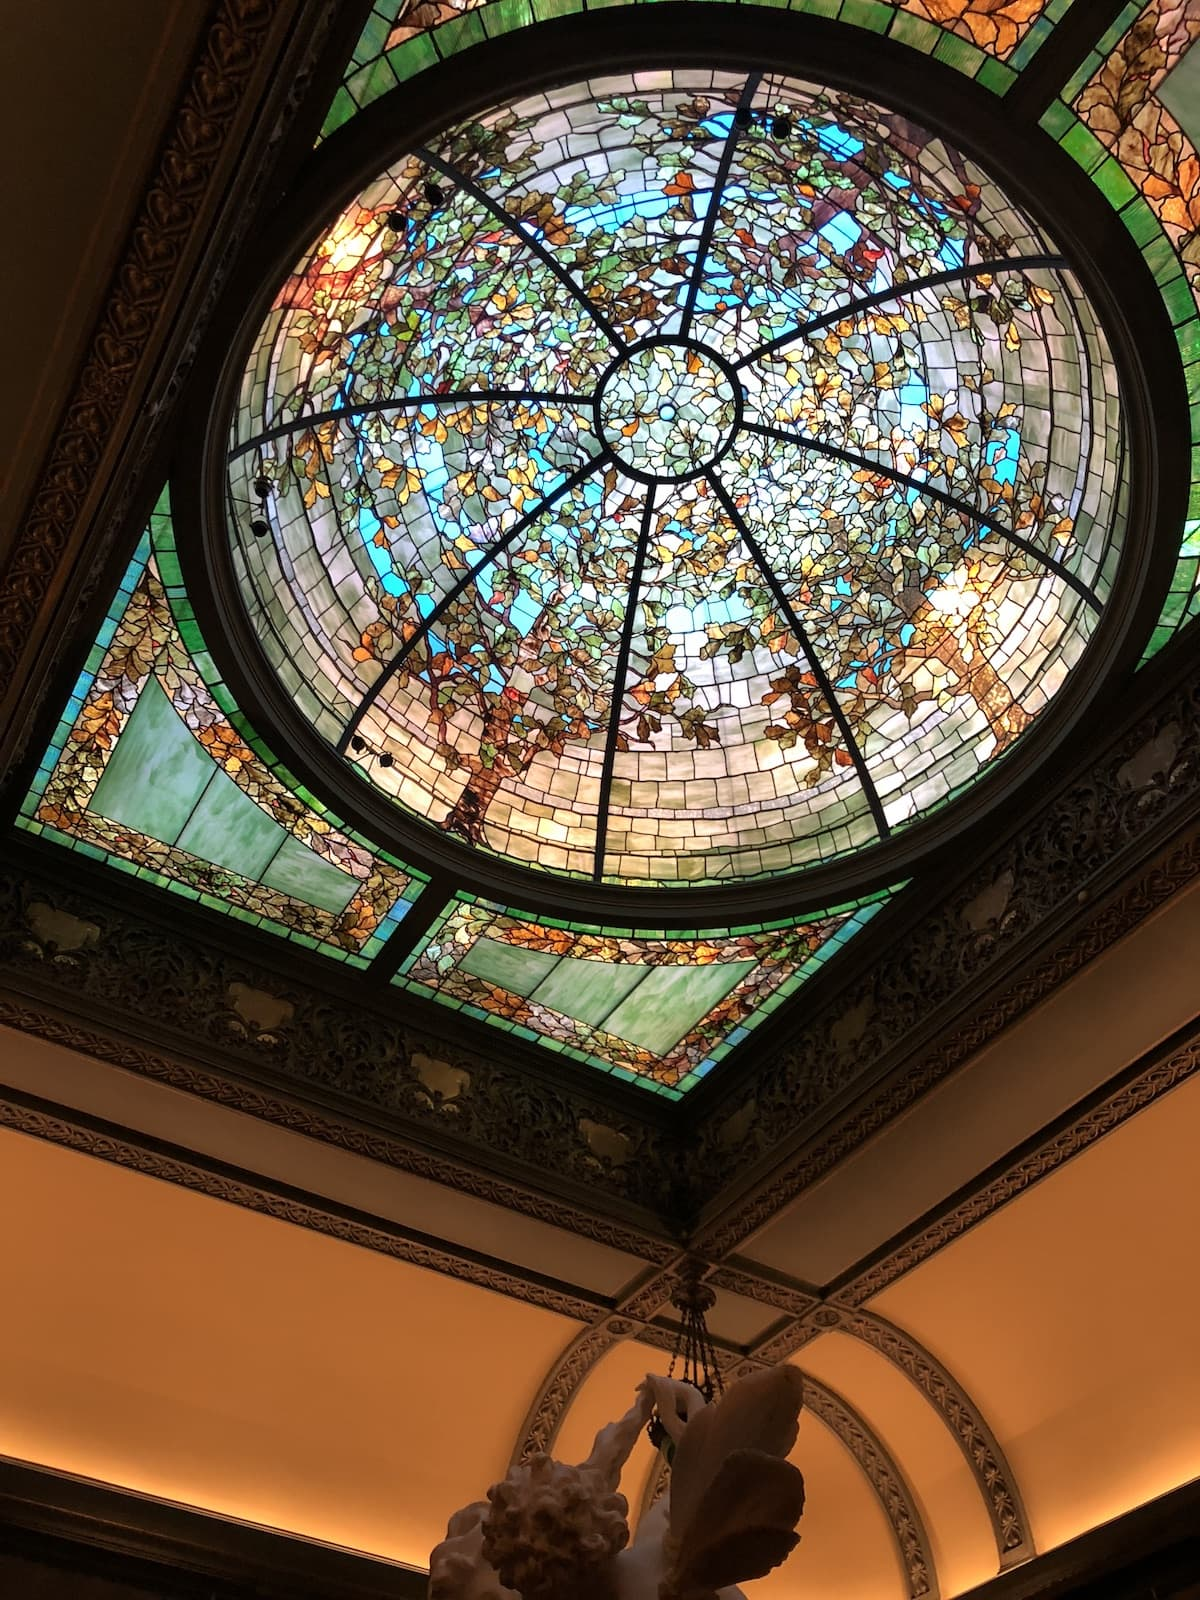 Enjoy Illinois: Exploring Chicago and the Magnificent Mile - Driehaus Museum